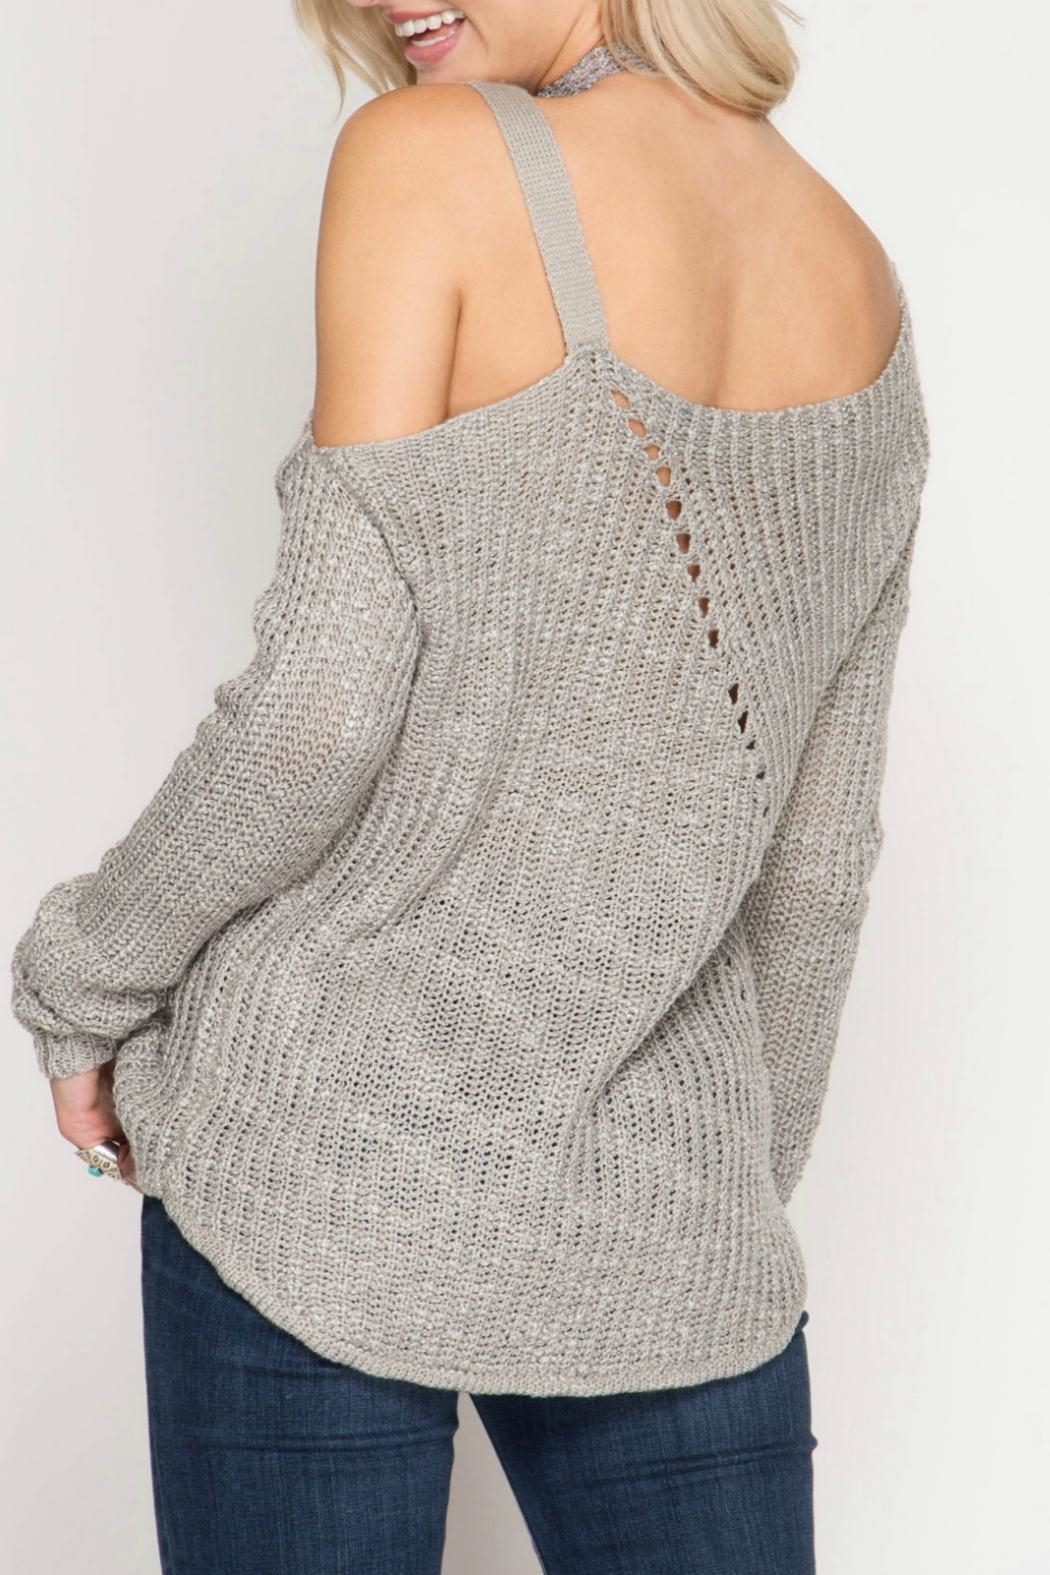 She + Sky Slub Knit Sweater - Front Full Image